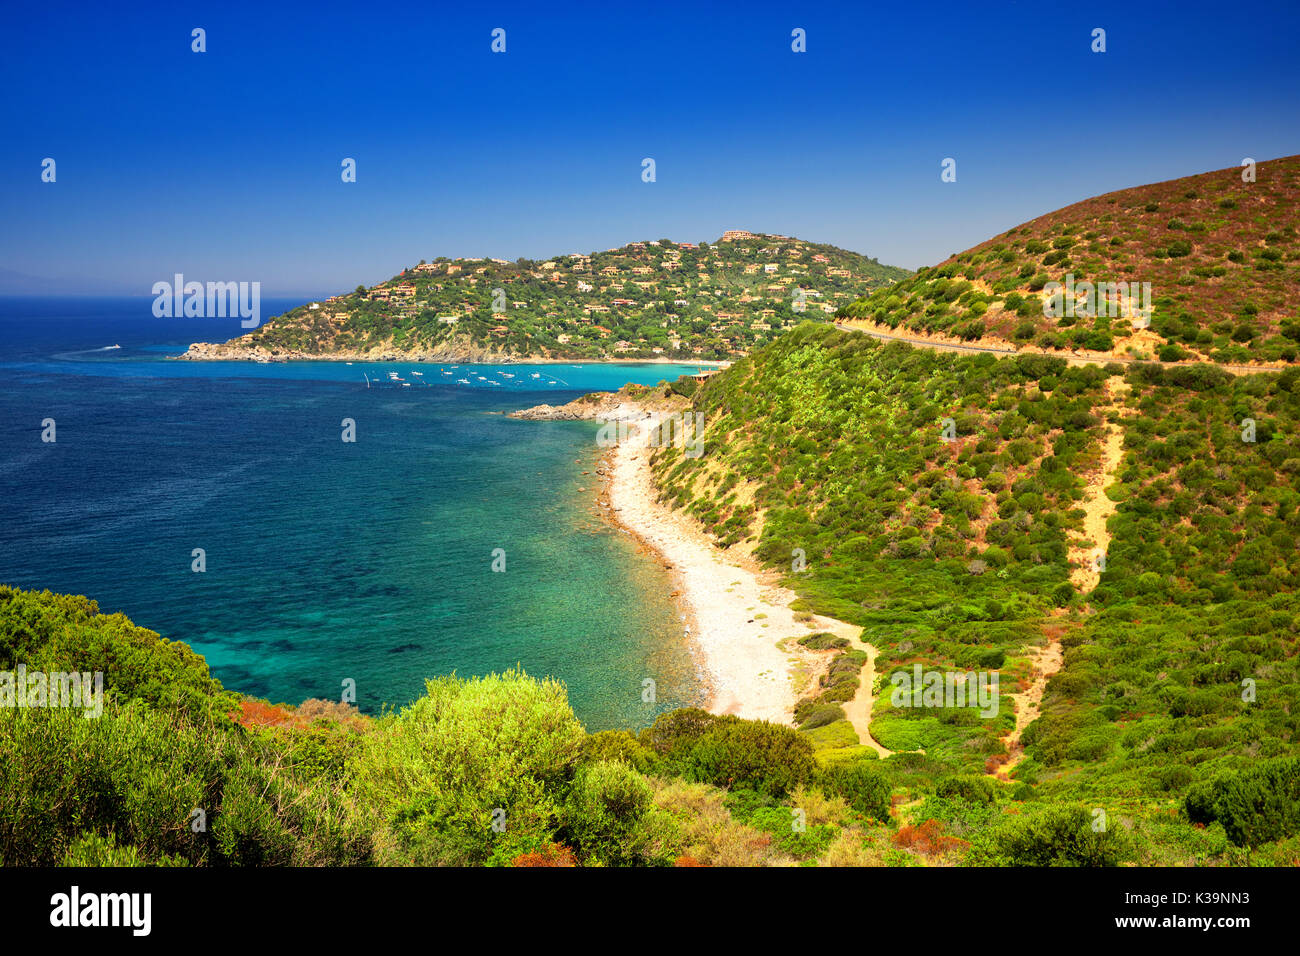 Second Largest Island In The Mediterranean Sea Stock Photos Second